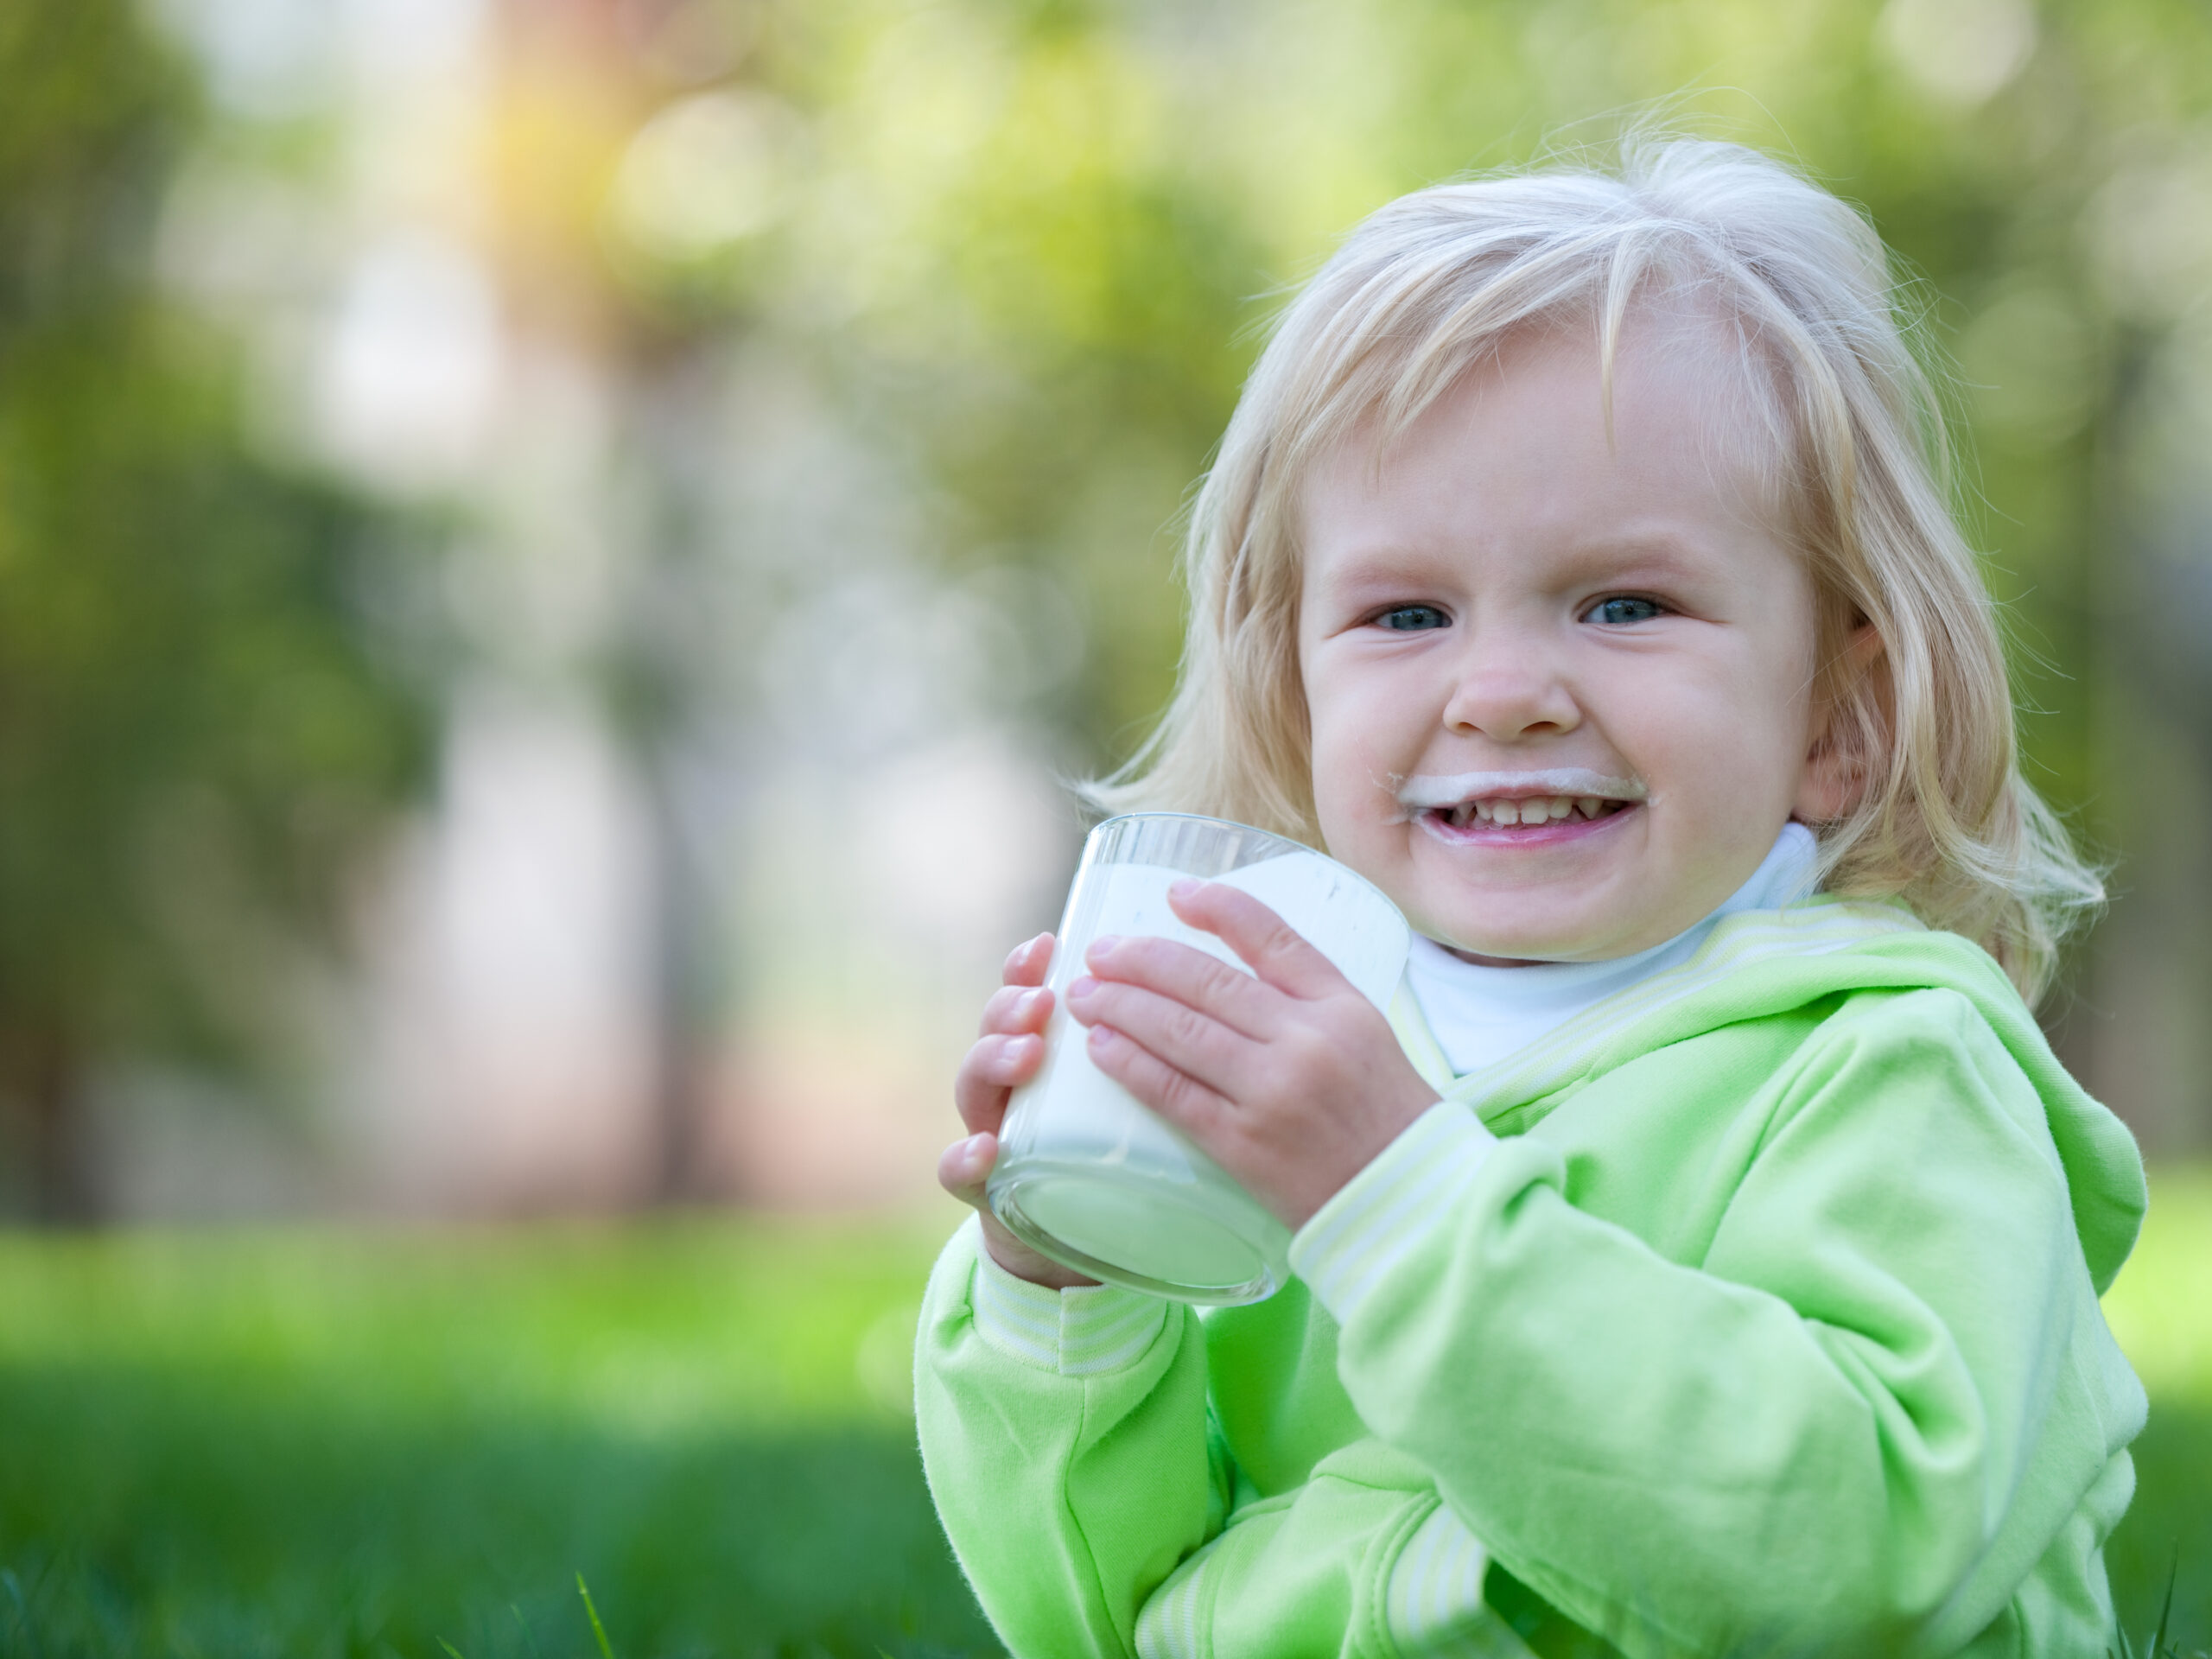 Blonde toddler drinking a glass of milk in the garden outdoors